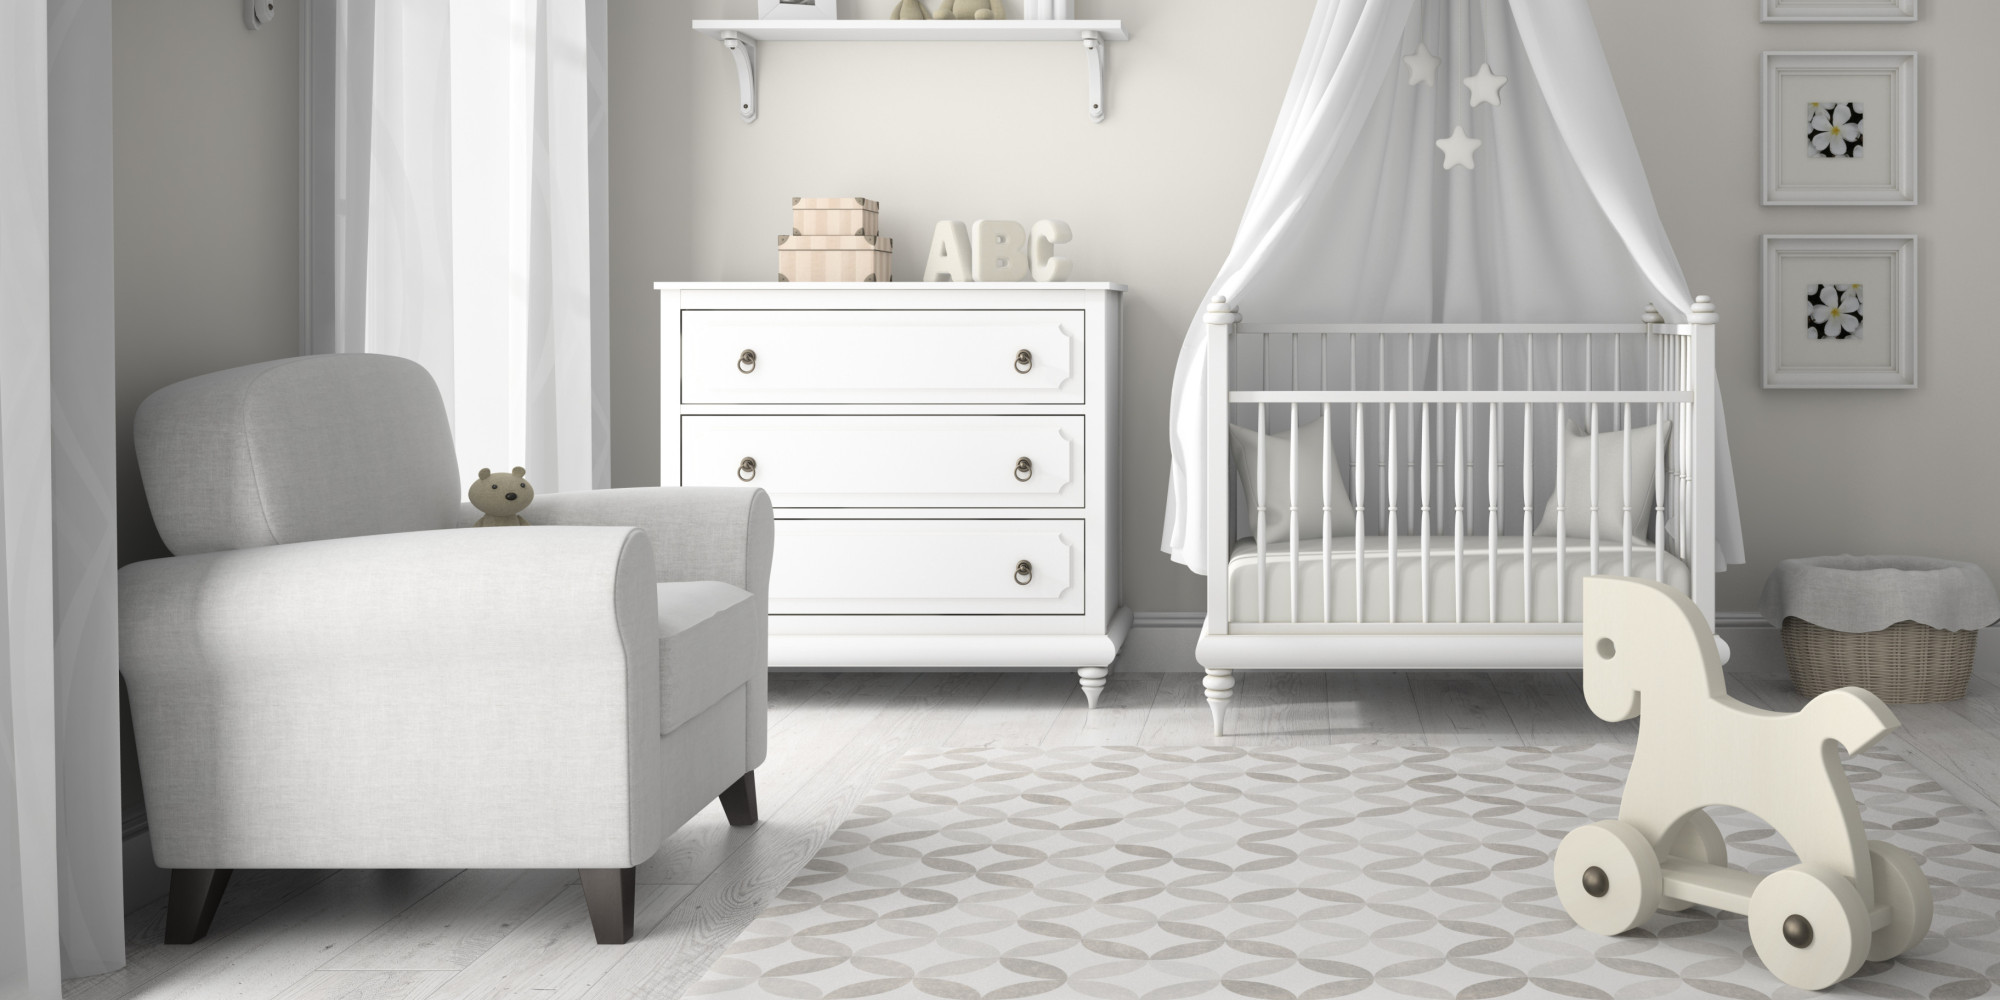 How to decorate your baby 39 s nursery in a day huffpost uk for Best baby cribs for small spaces